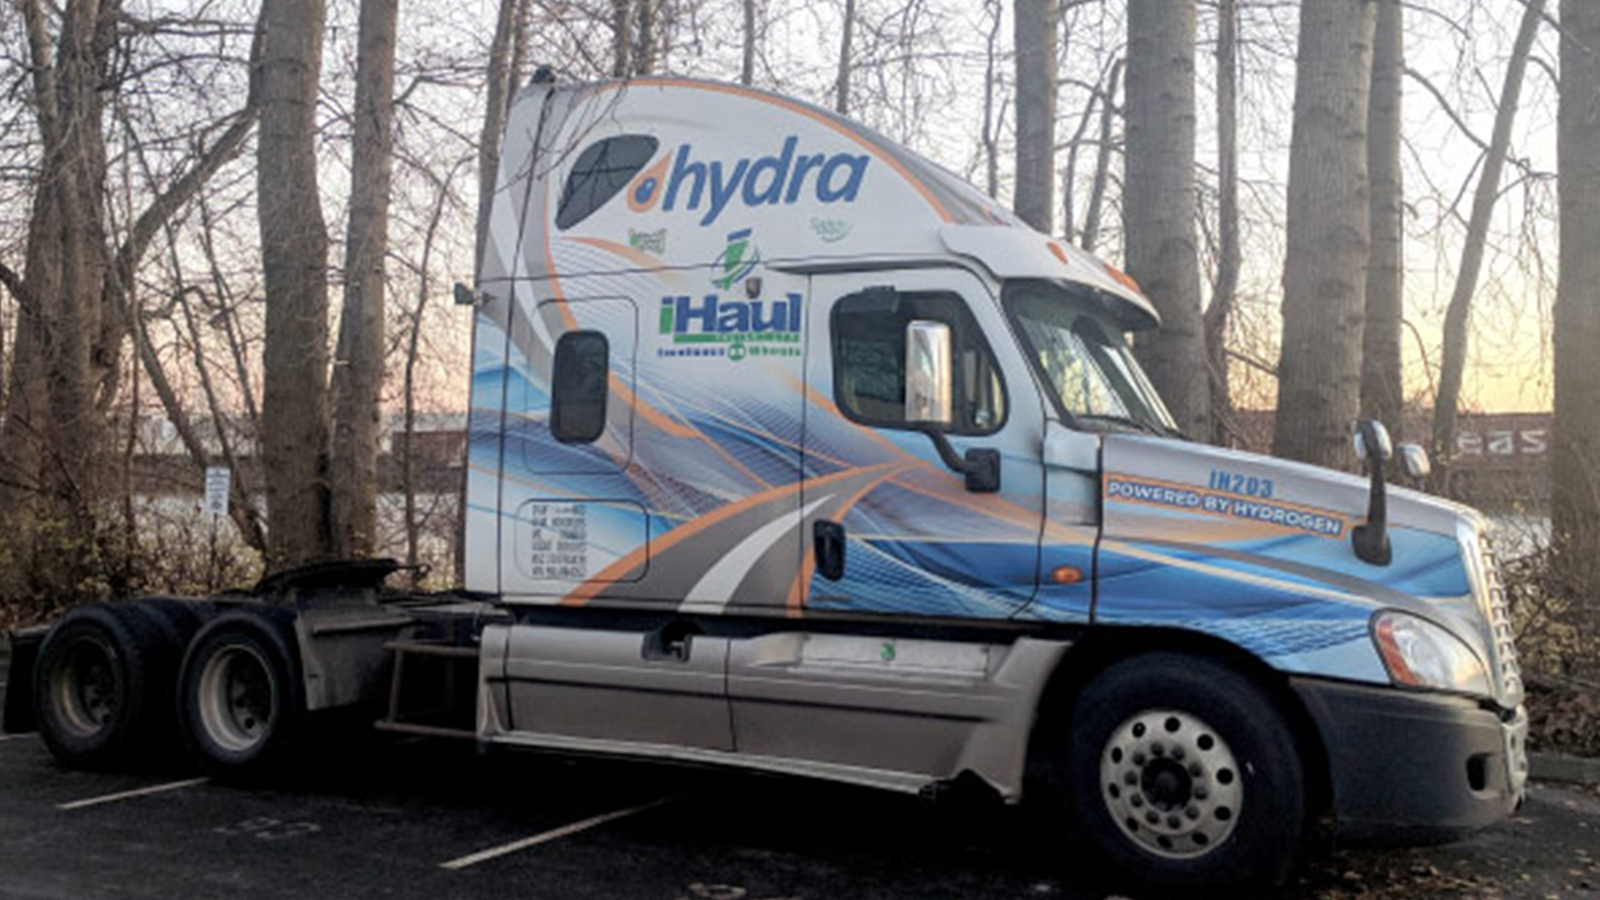 Local company playing a central role in the transition to an affordable hydrogen economy